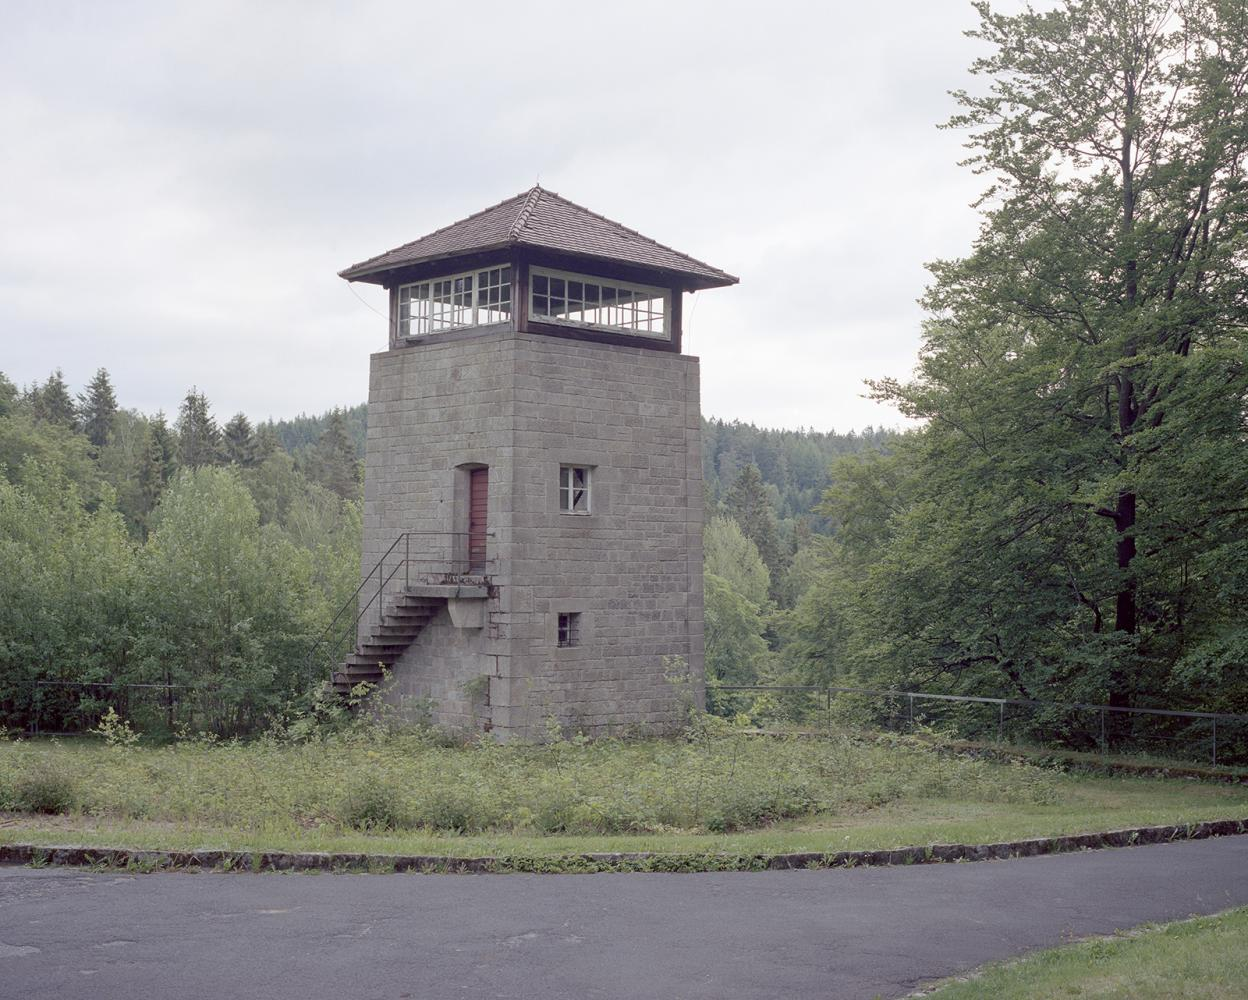 Germany, Flossemburg. A tower of the Flossemburg Concentration Camp. Around 100000 people were imprisoned in the camp. Among the death prisoners there was Eugenio Pertini, brother of Sandro Pertini that in 1978 became the President of Italy.